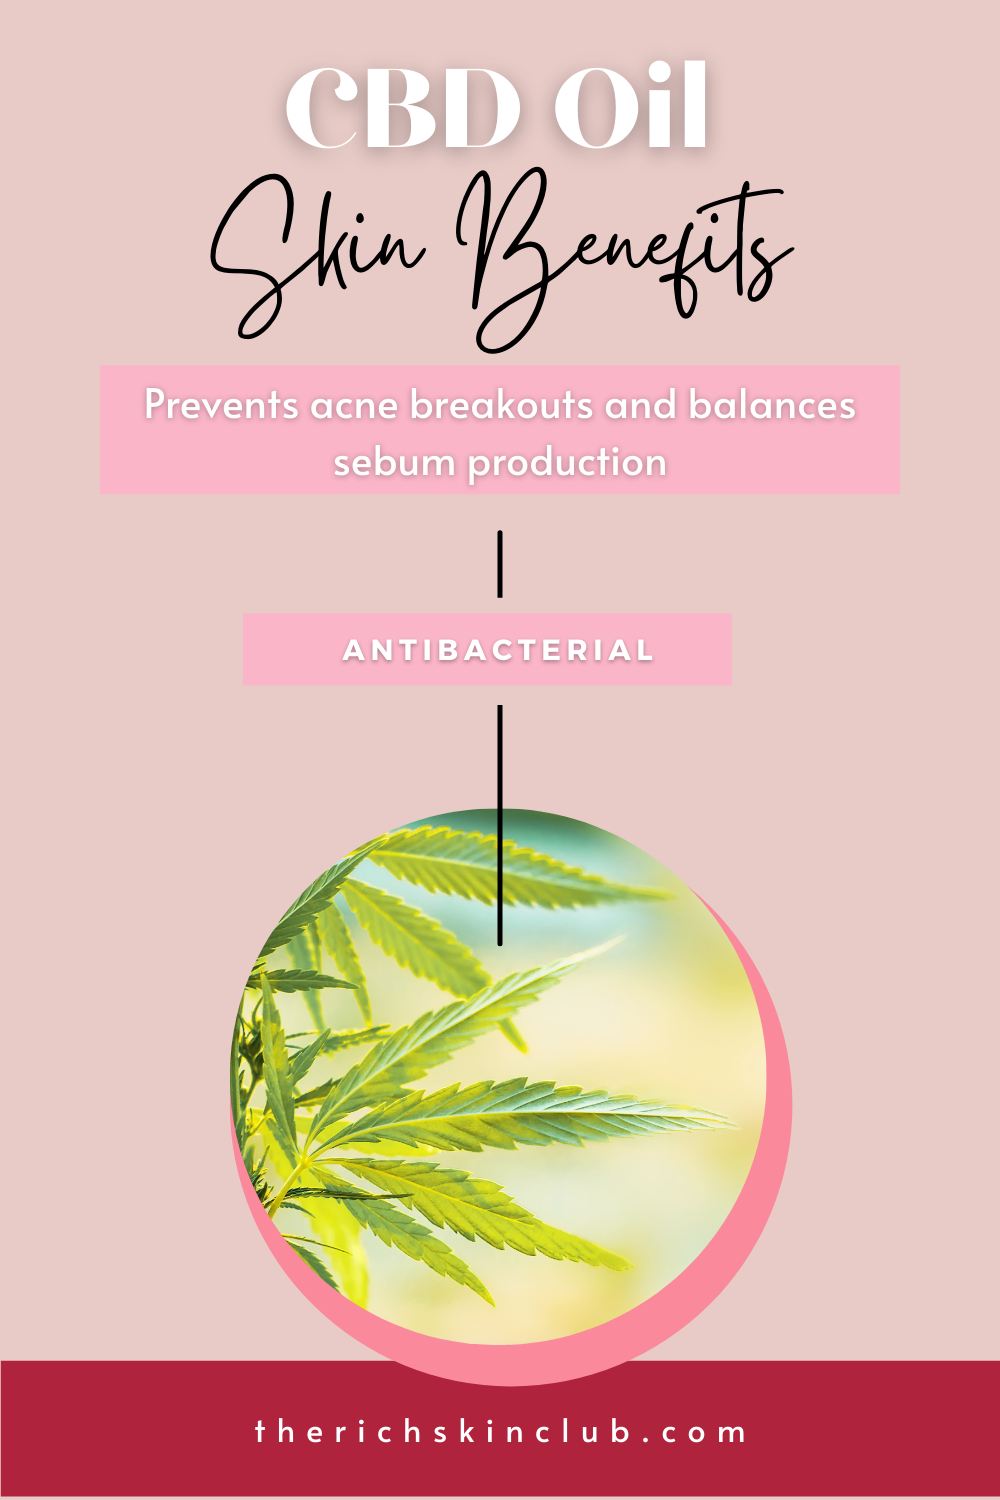 CBD Oil.. What is it? And why is it in your skincare? We're breaking down the benefits and facts that CBD oil has for skin. Is it just a fad? Or does it really have big beauty benefits? Click here for all the CBD details and Fior Awaken Eye Cream Review!  #CBDOil #TrueFior #CBDOilBenefits